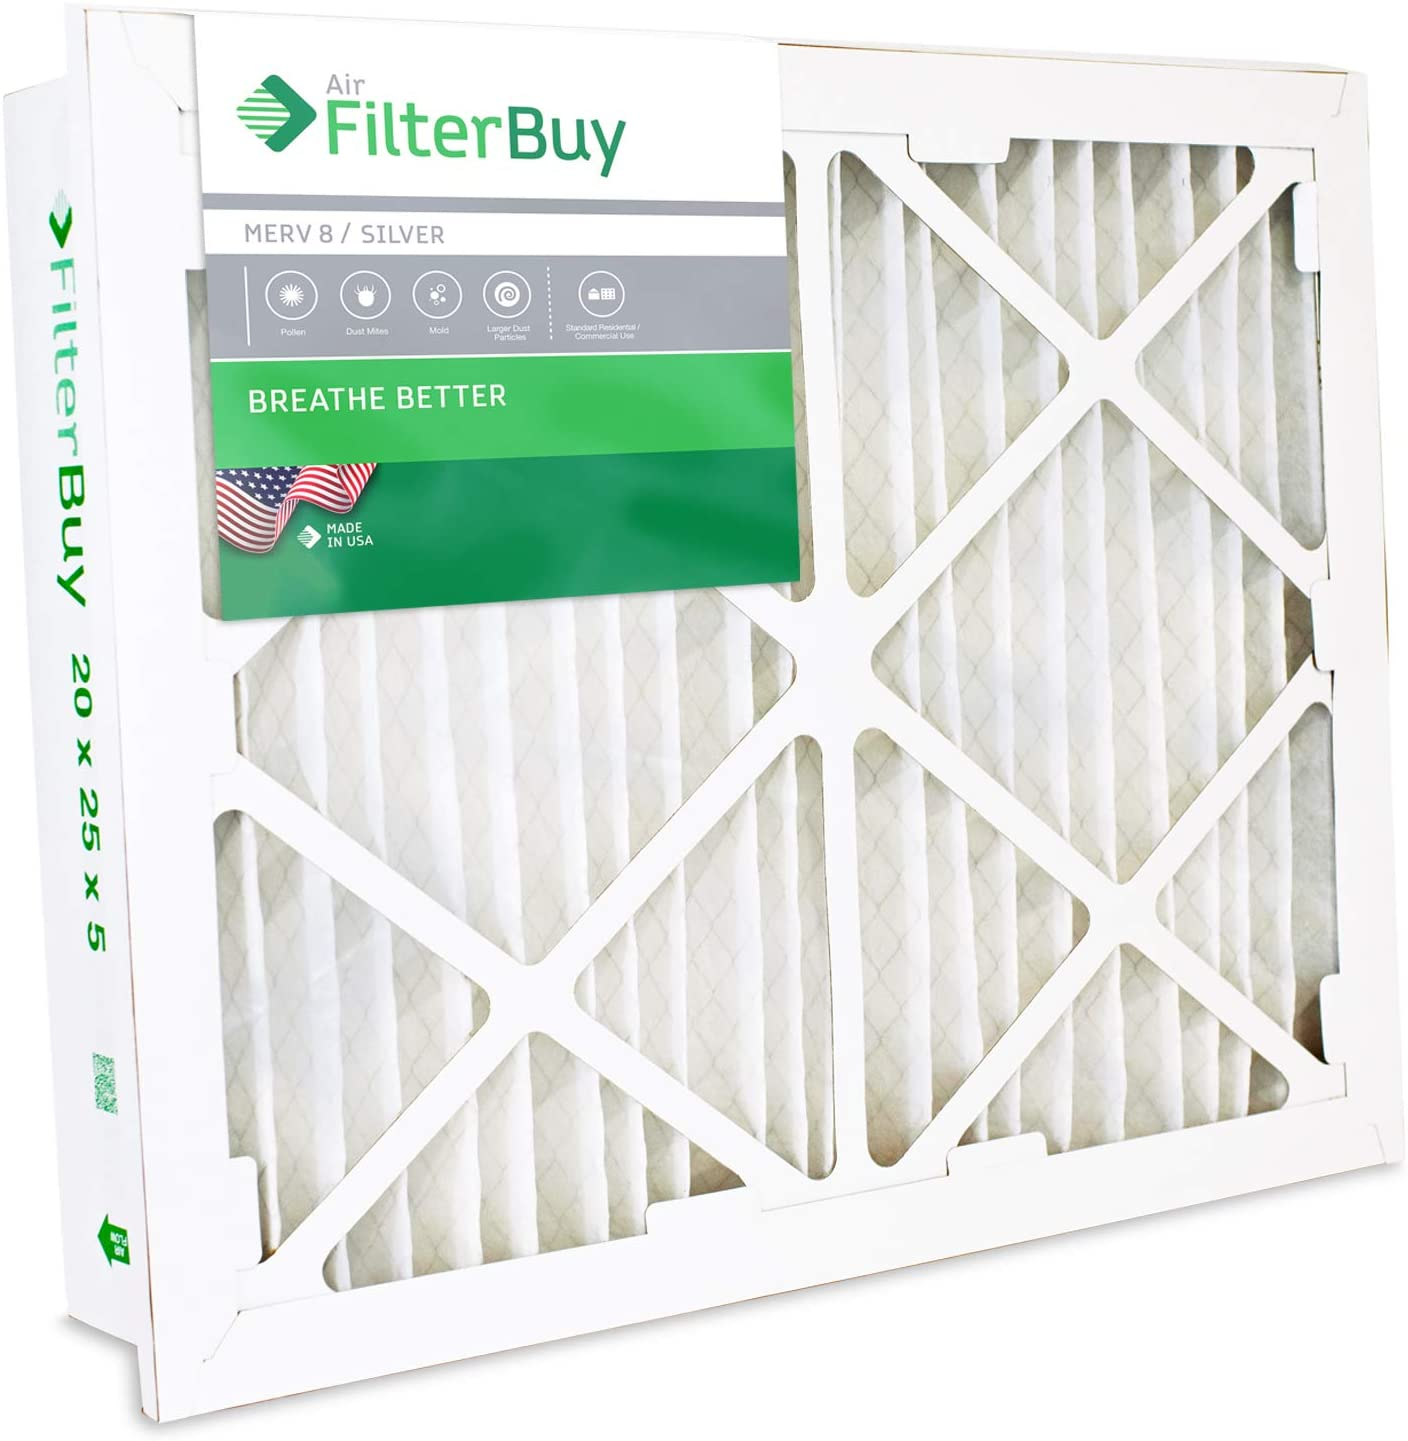 FilterBuy 24x24x5 Grille Honeywell FC40R1078, FC35A1076 Compatible Pleated AC Furnace Air Filters (MERV 8, AFB Silver). 1 Pack.